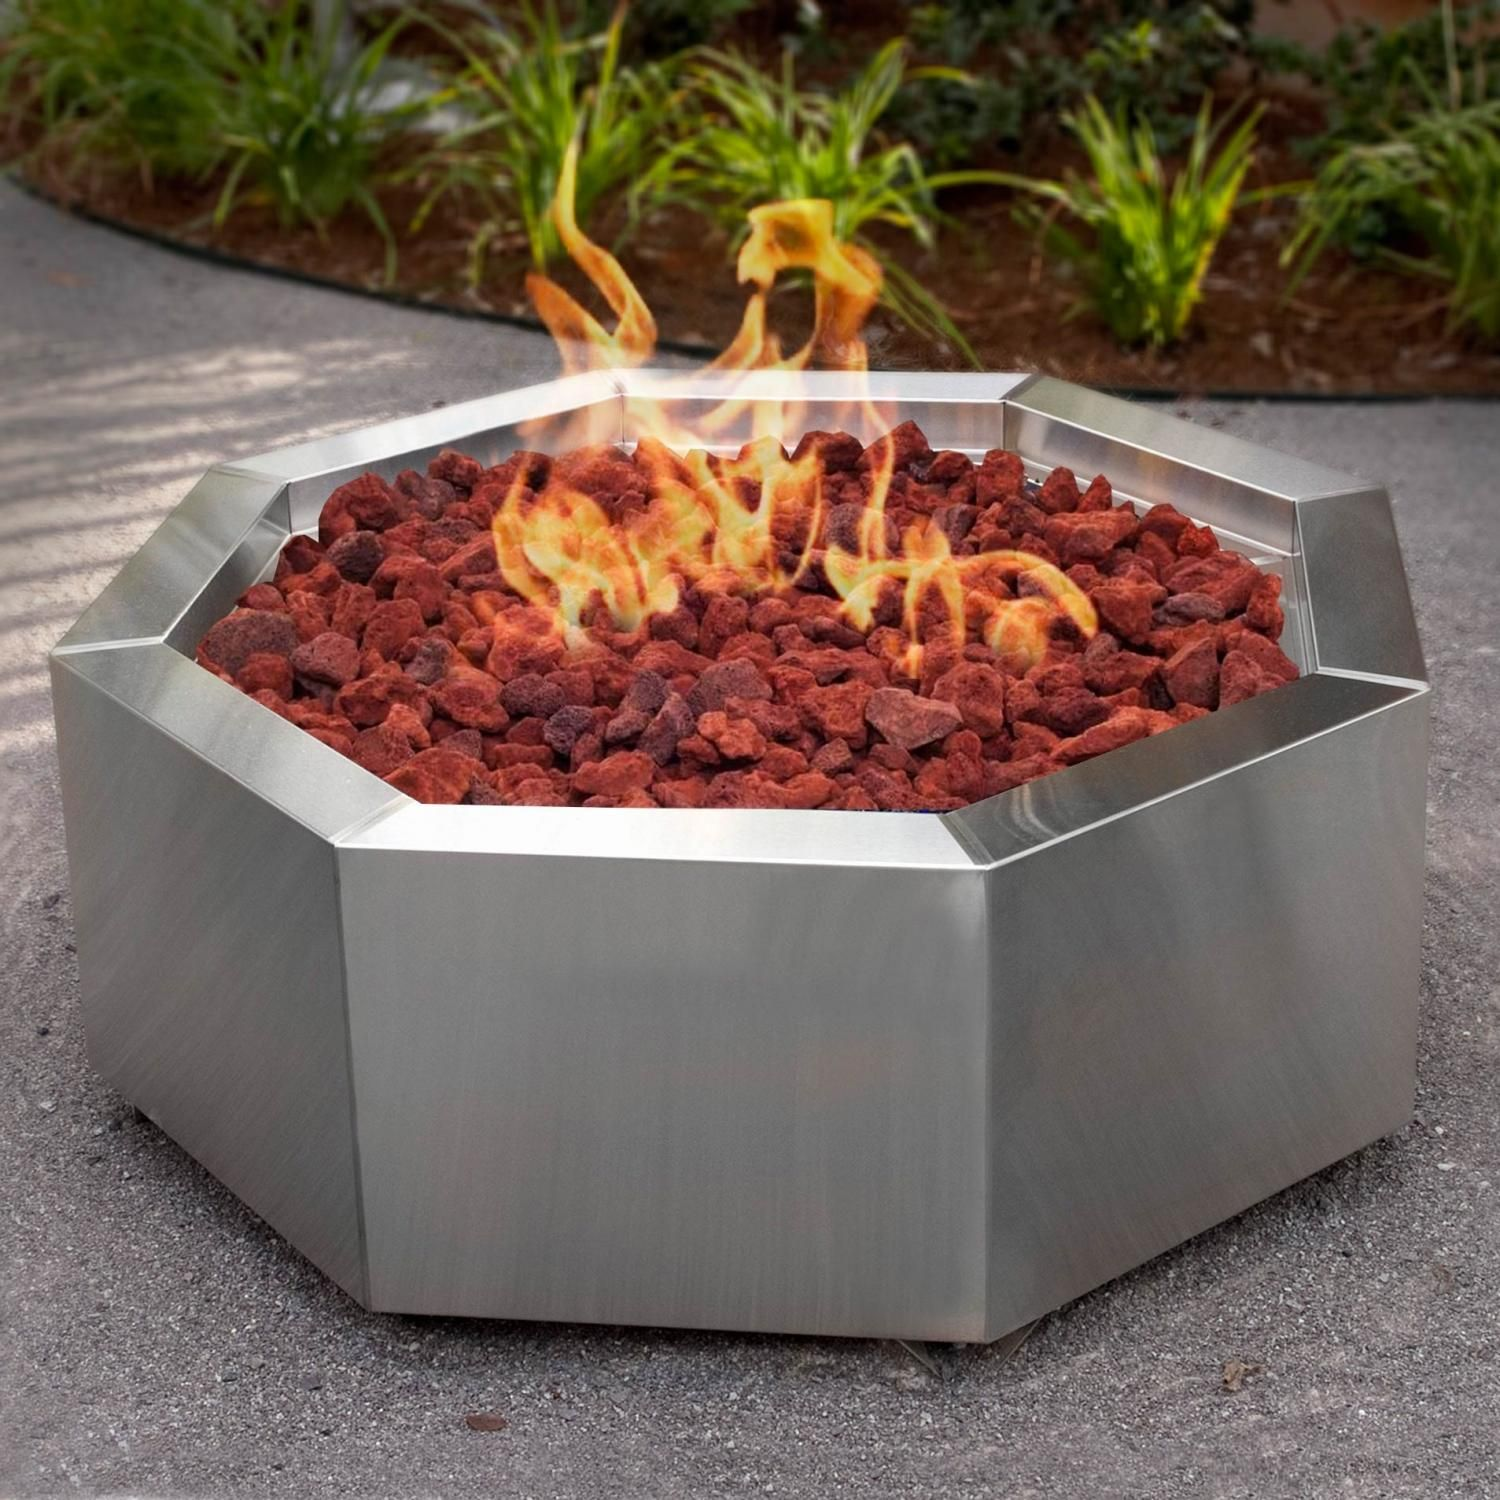 Stainless Steel Outdoor Dining Table Bbqguyscom 42 Inch Stainless Steel Octagon Fire Pit Natural Gas